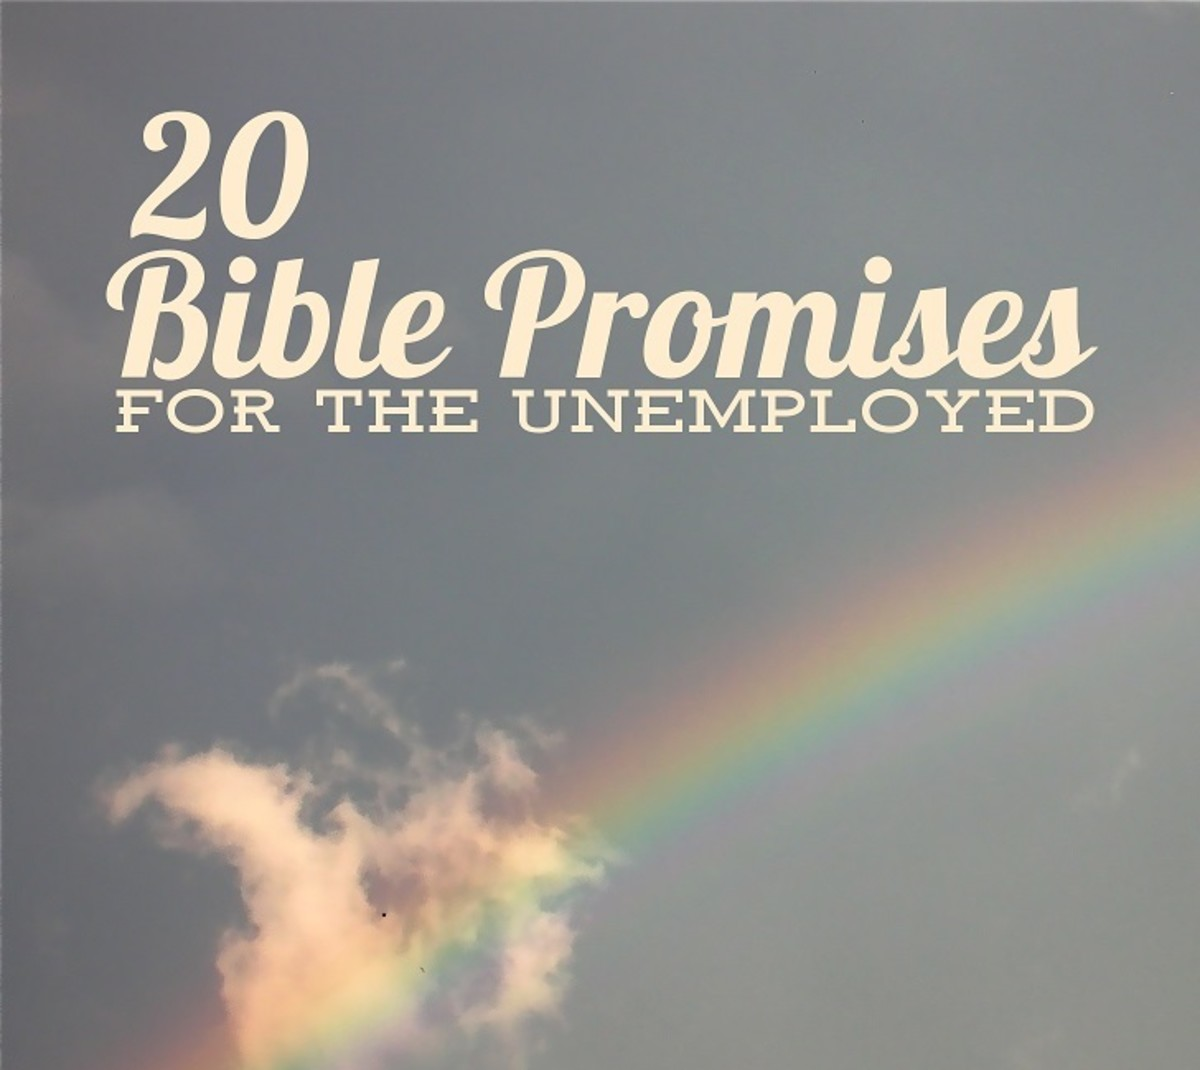 20 Bible Promises for the Unemployed